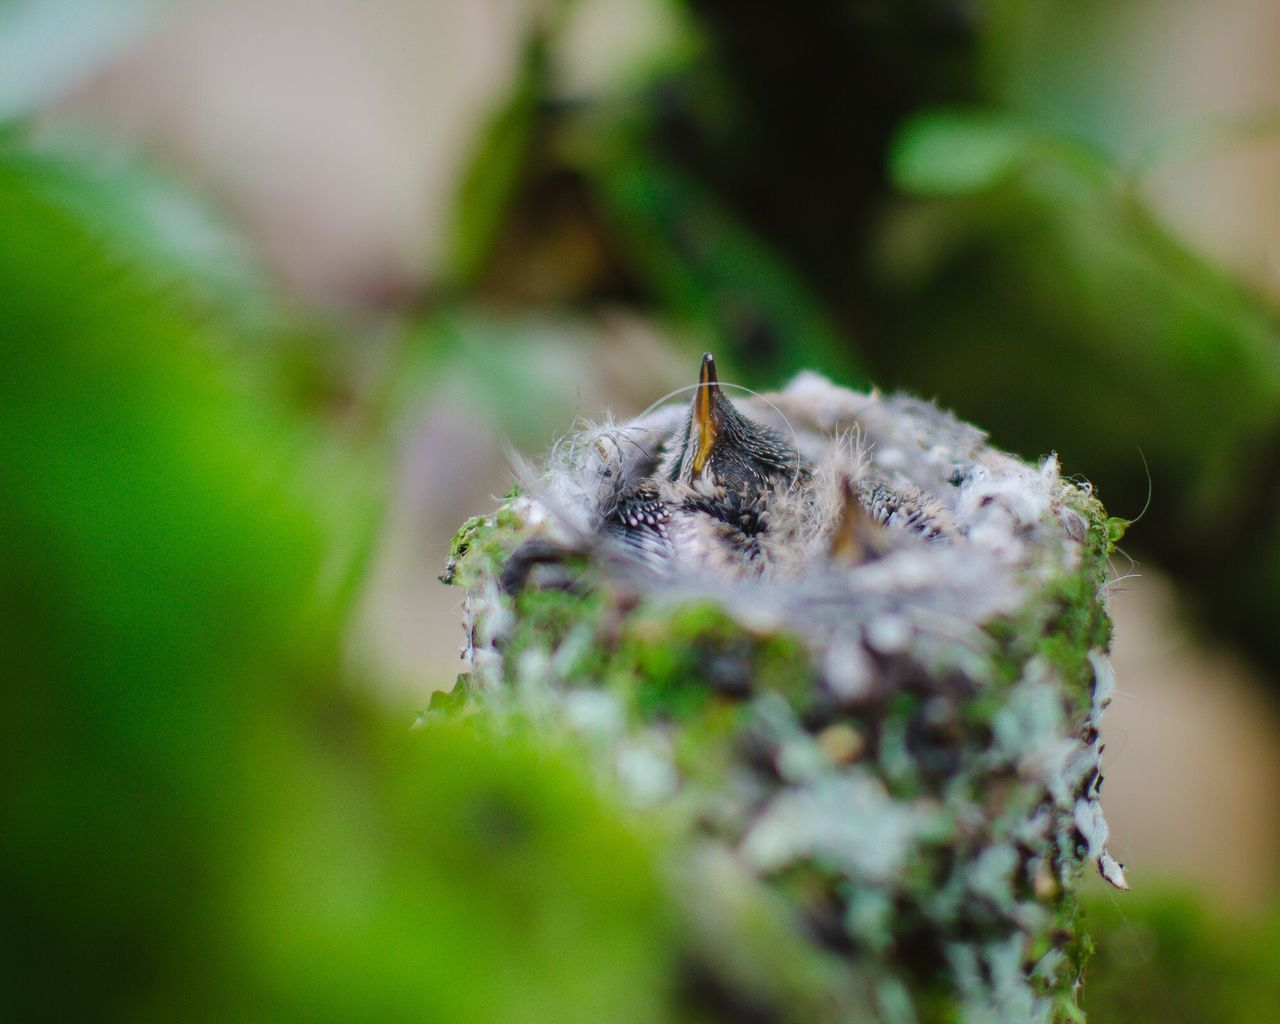 14 day old hummingbird chicks. Animal Themes Animals In The Wild One Animal Insect Nature Animal Wildlife Close-up No People Day Outdoors Birds Of EyeEm  Bird Photography Birds Hummingbird